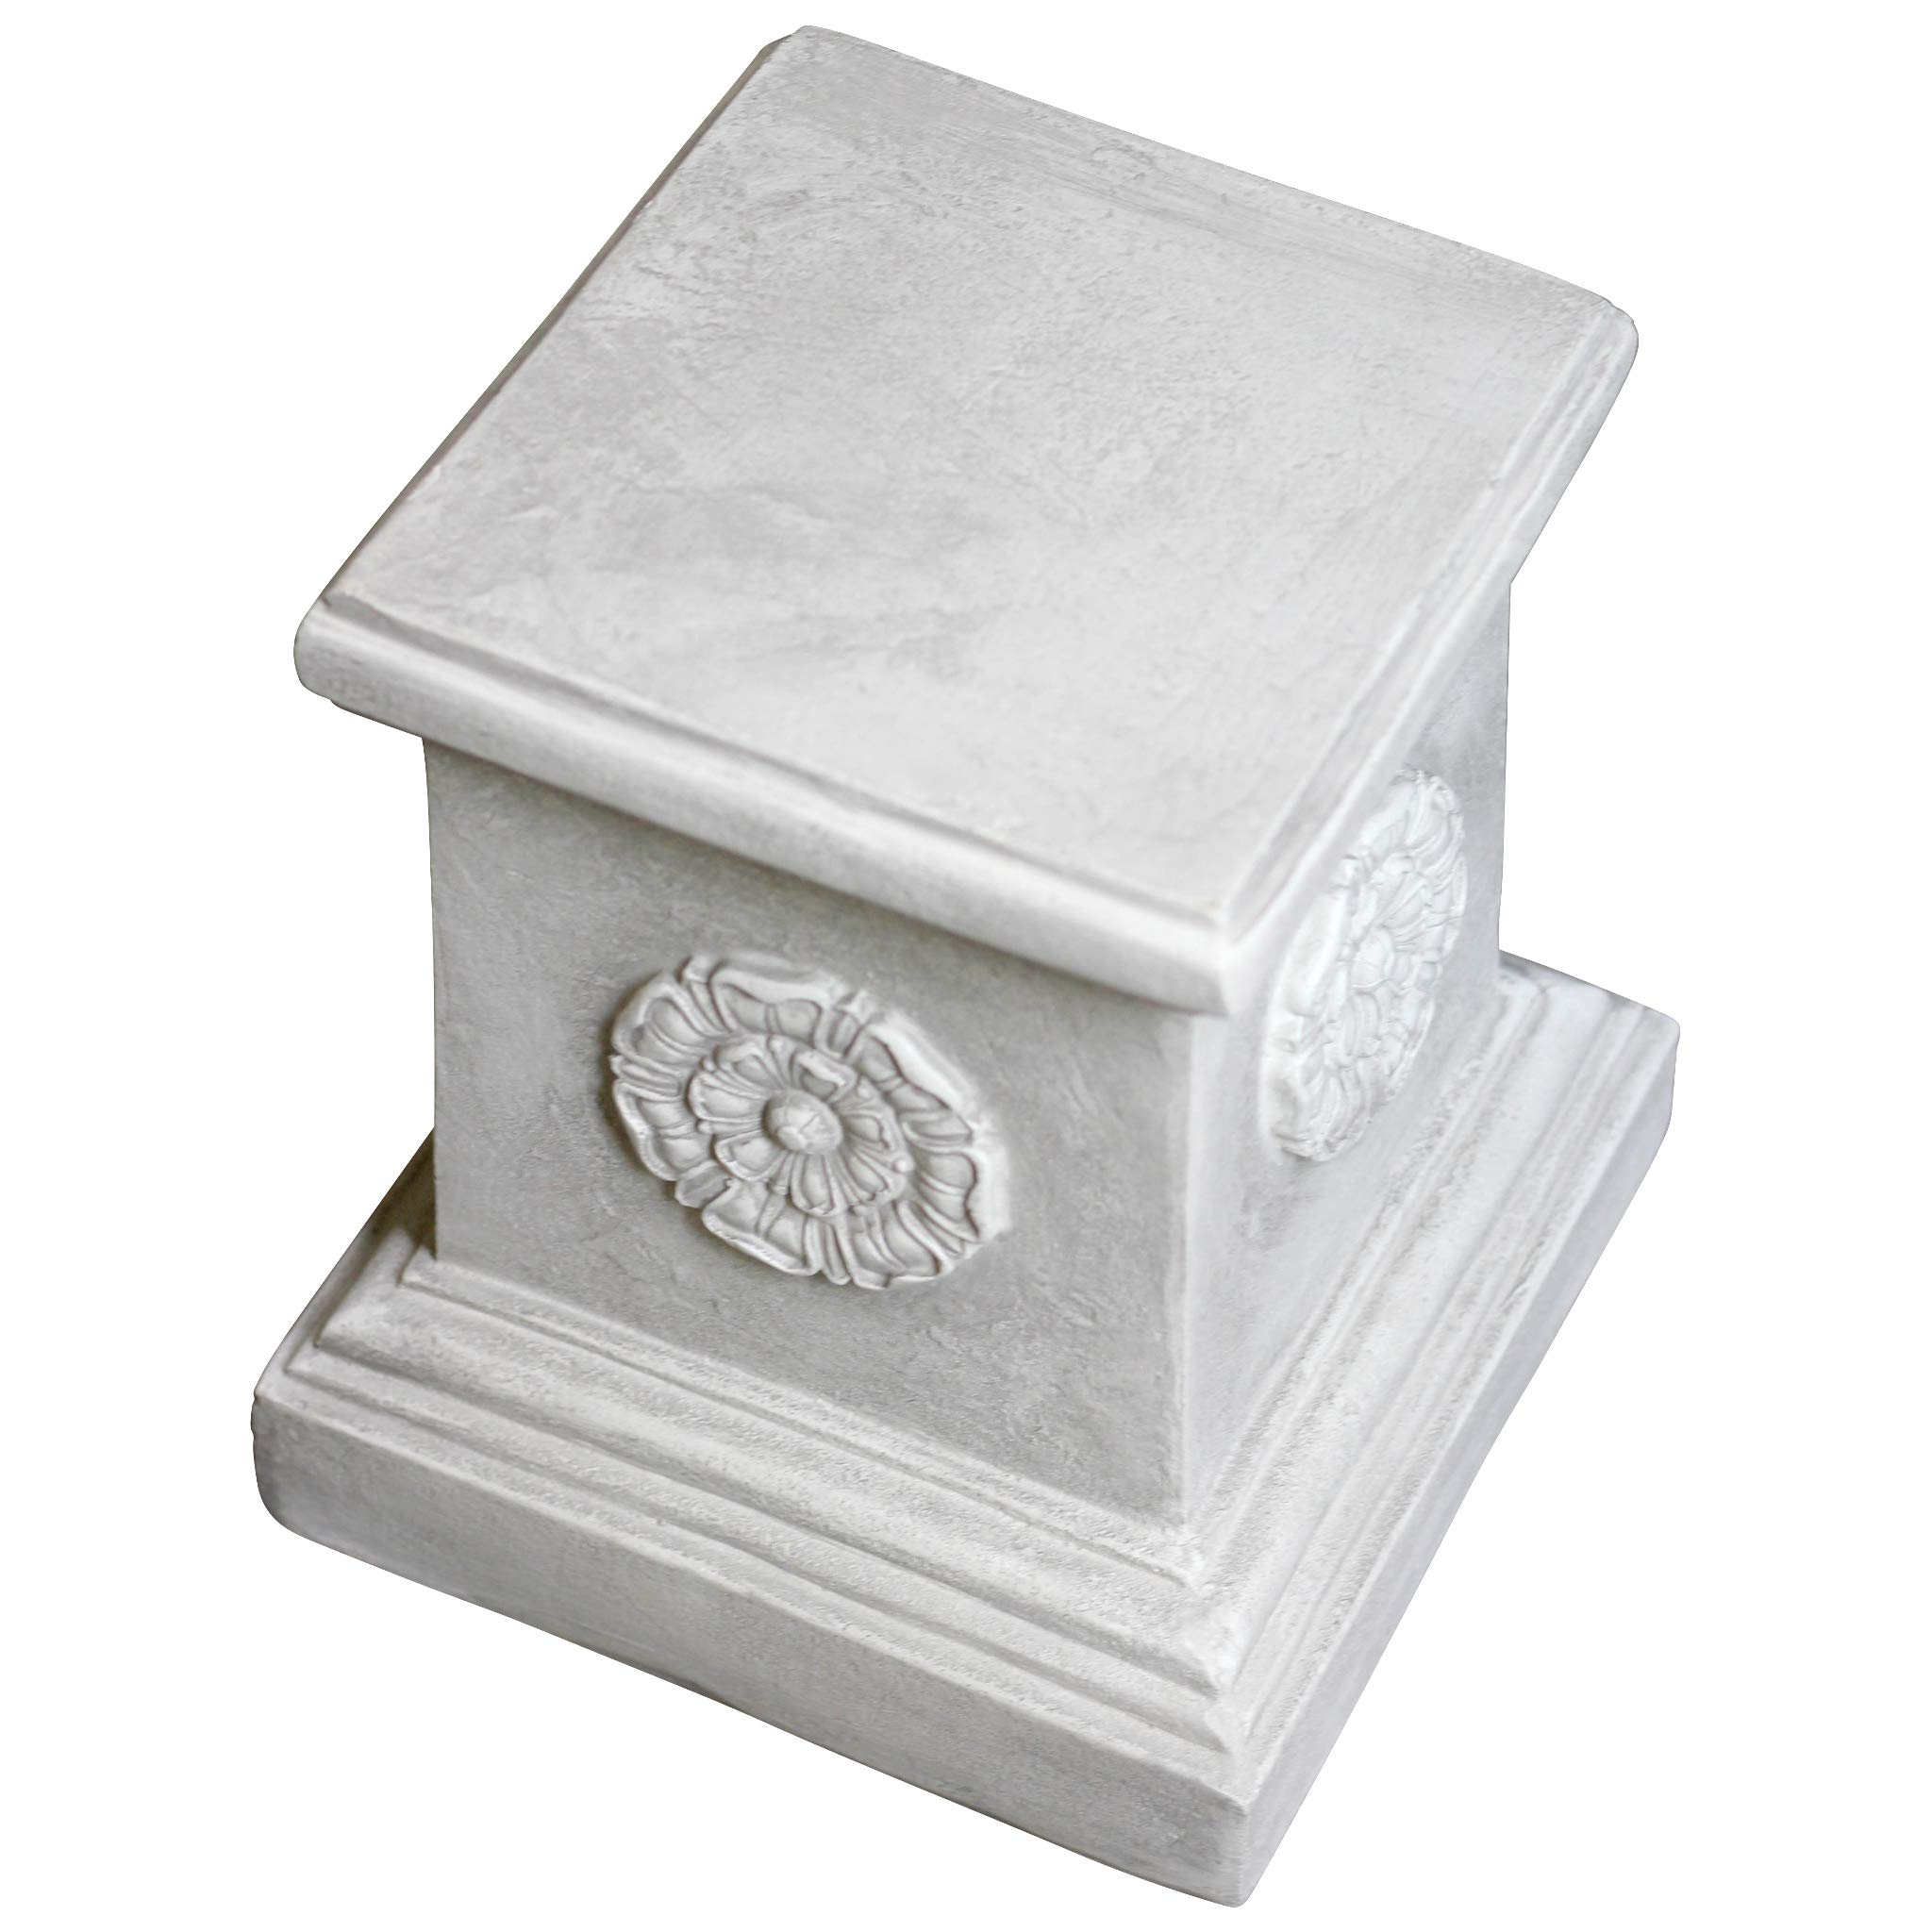 Design Toscano English Rosette Sculptural Garden Plinth Base Riser, Large 13 Inch, Polyresin, Antique Stone by Design Toscano (Image #4)